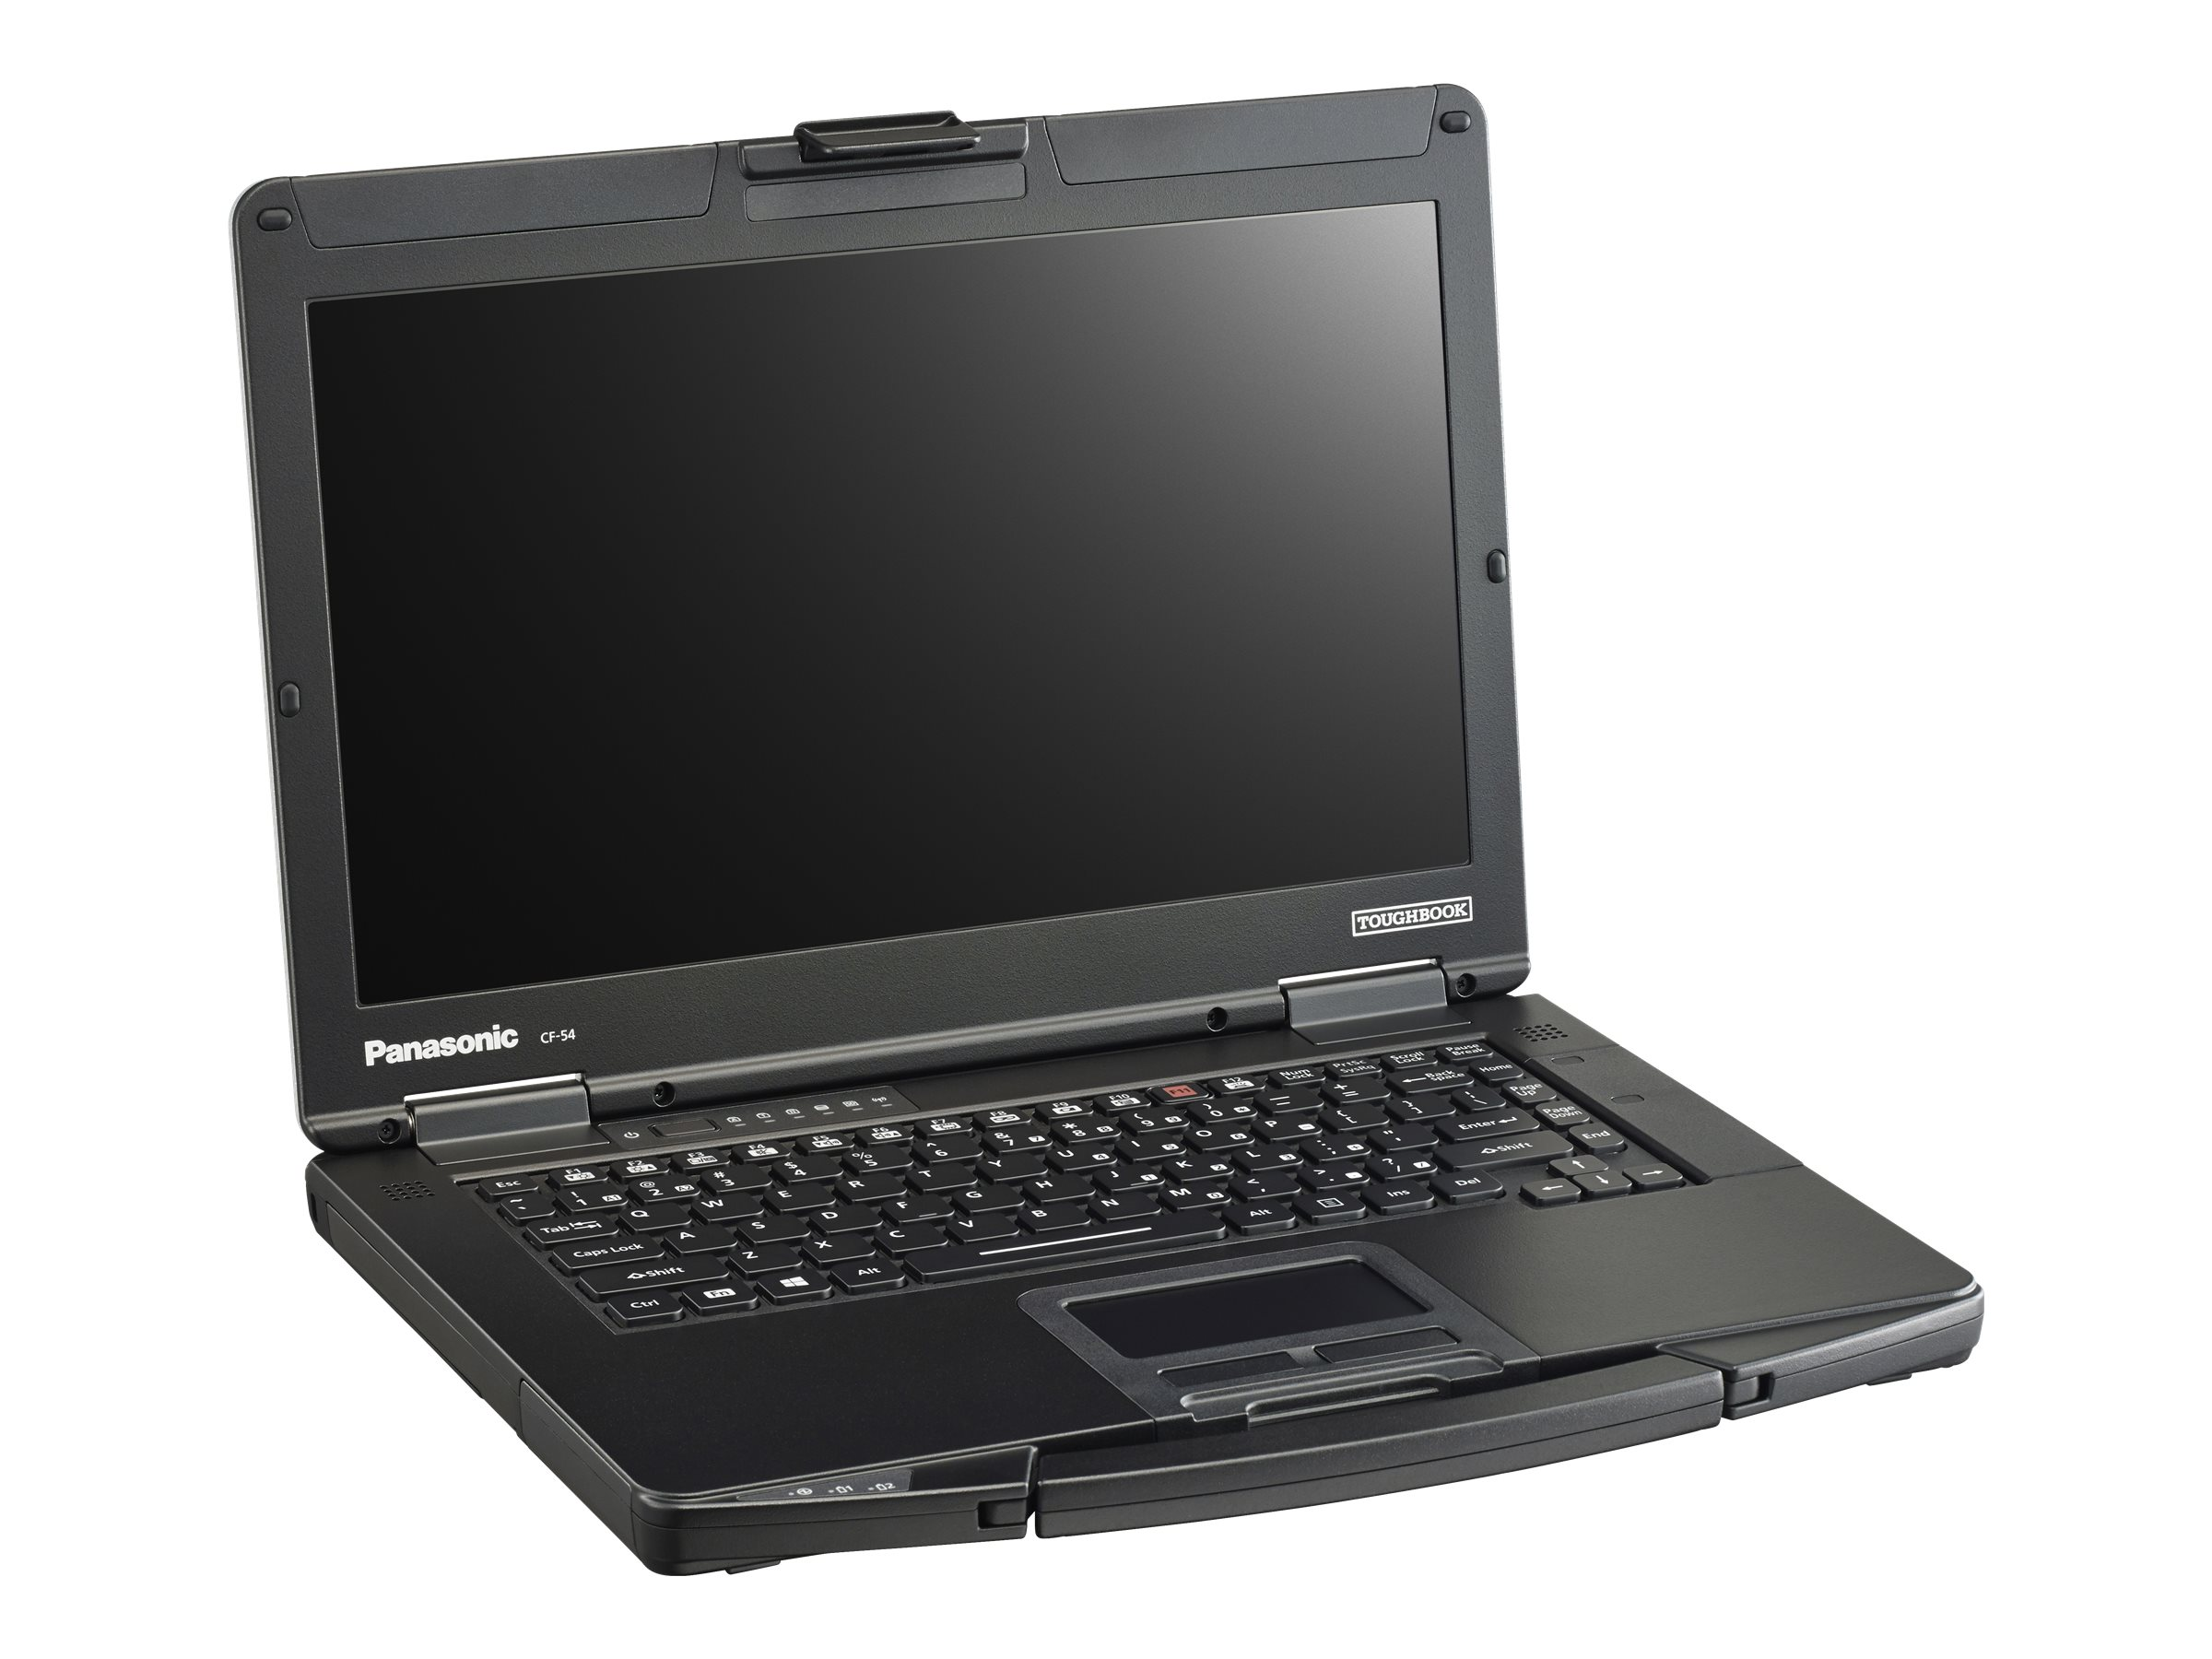 Panasonic Toughbook 54 2.4GHz Core i5 14in display, CF-54F4442VM